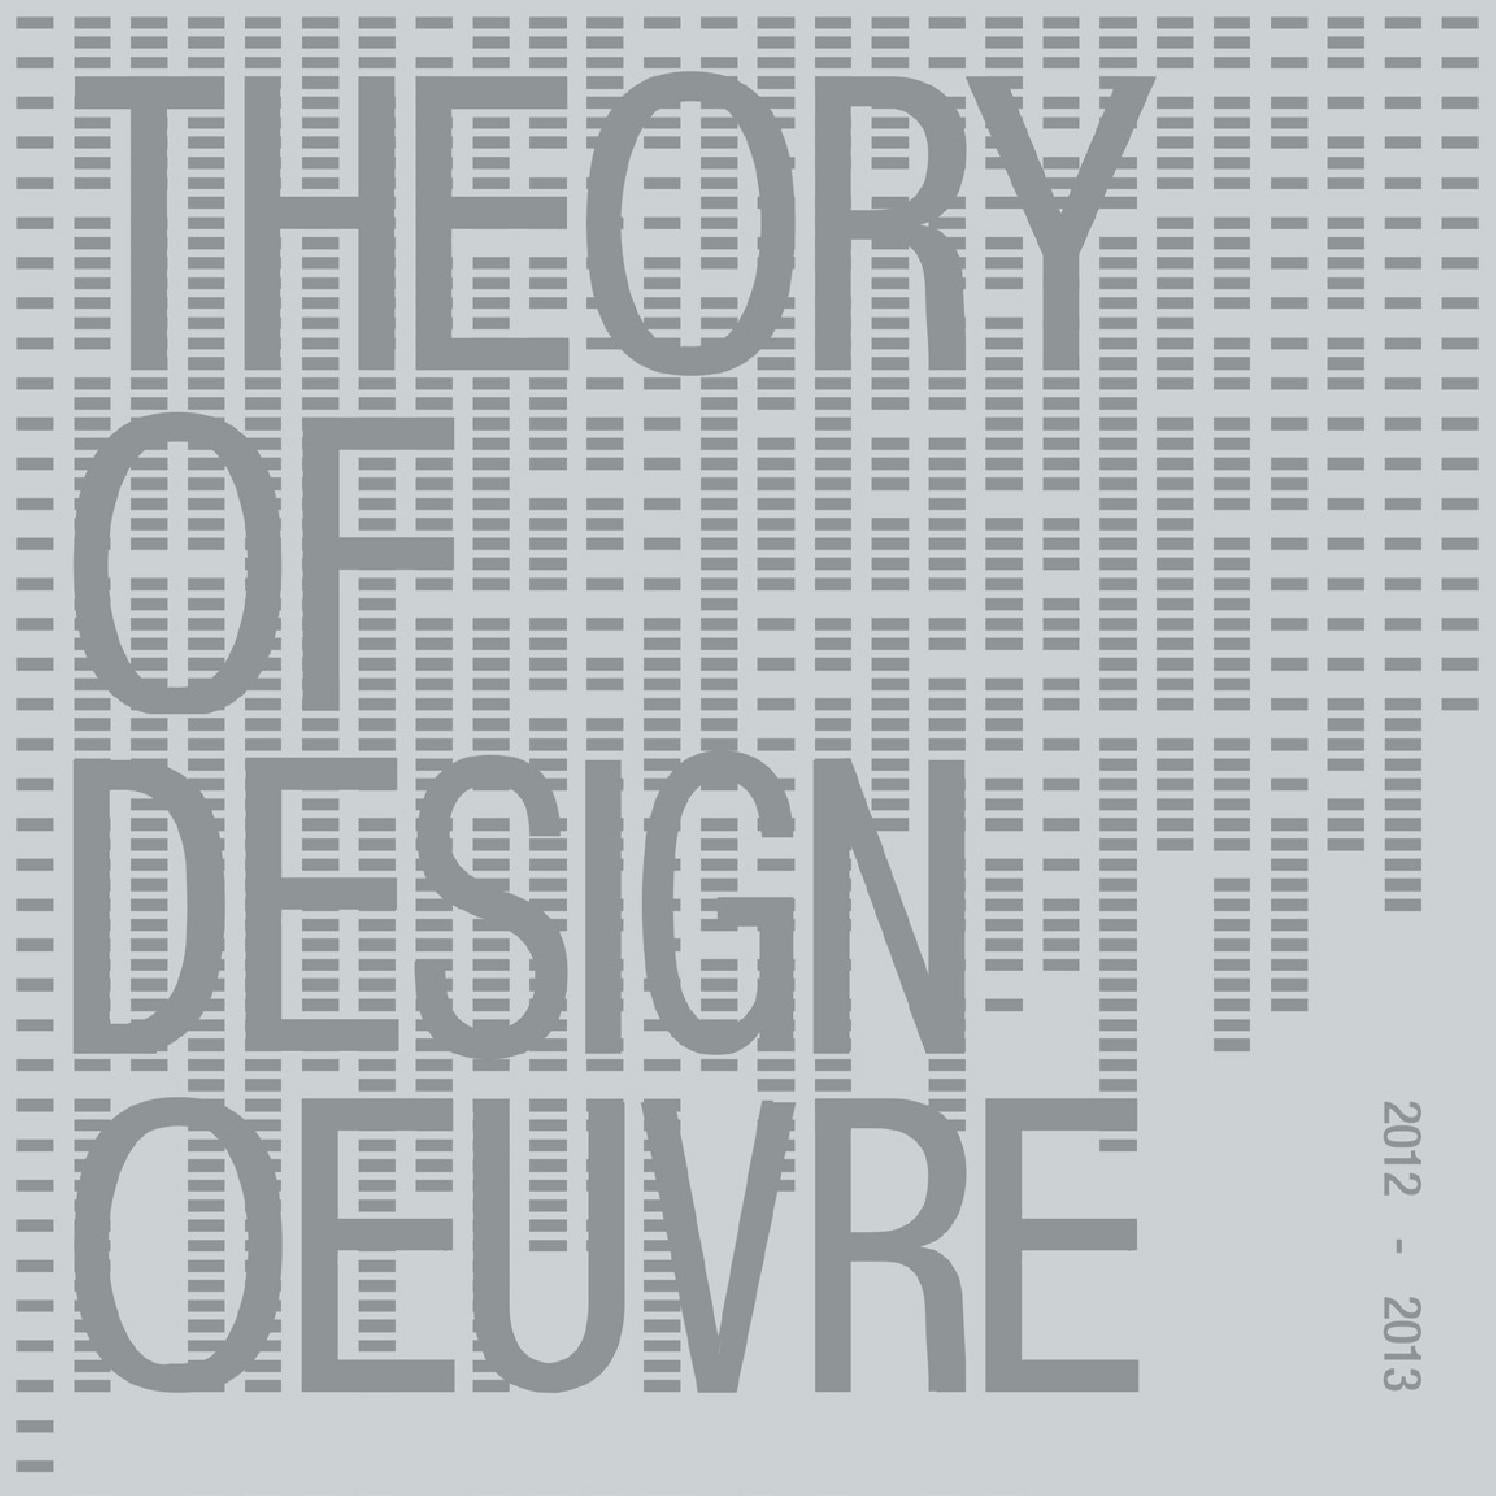 Theory Of Design Oeuvre 2012 2013 By Aneesh Nandi Issuu Kaos Kaki Florist Wr 002